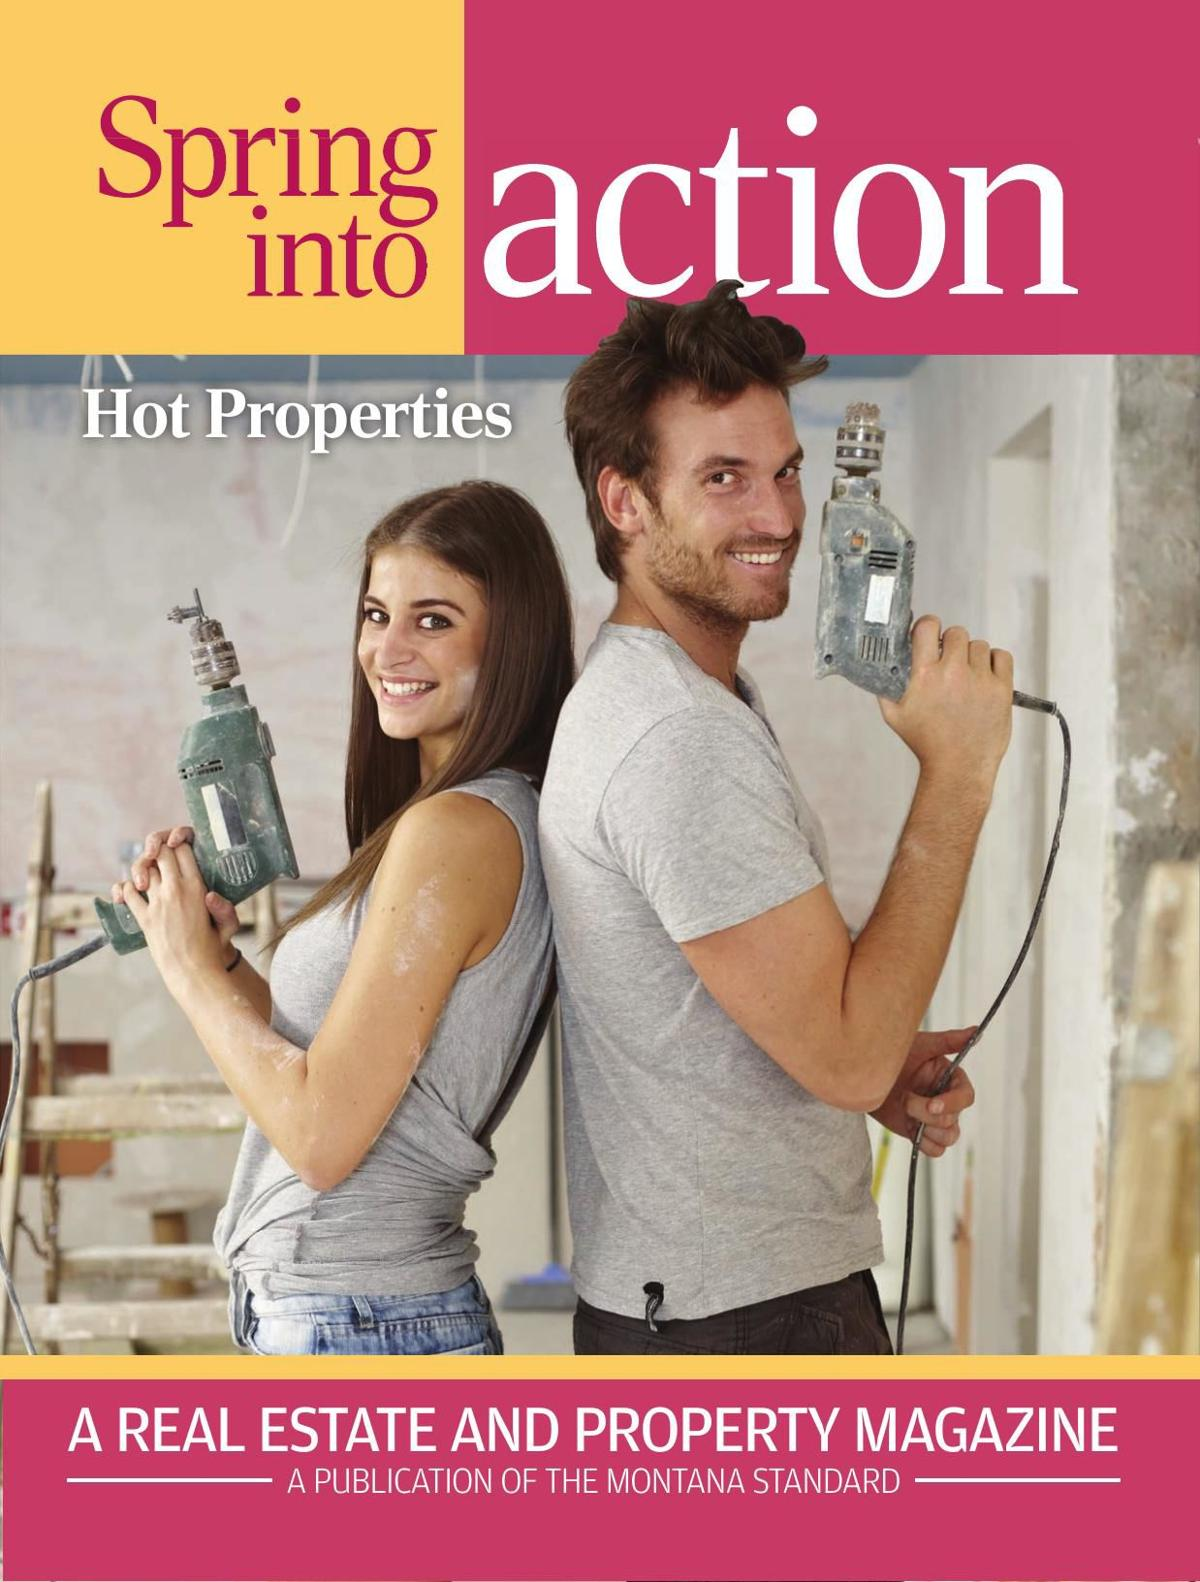 Hot Properties Spring into Action